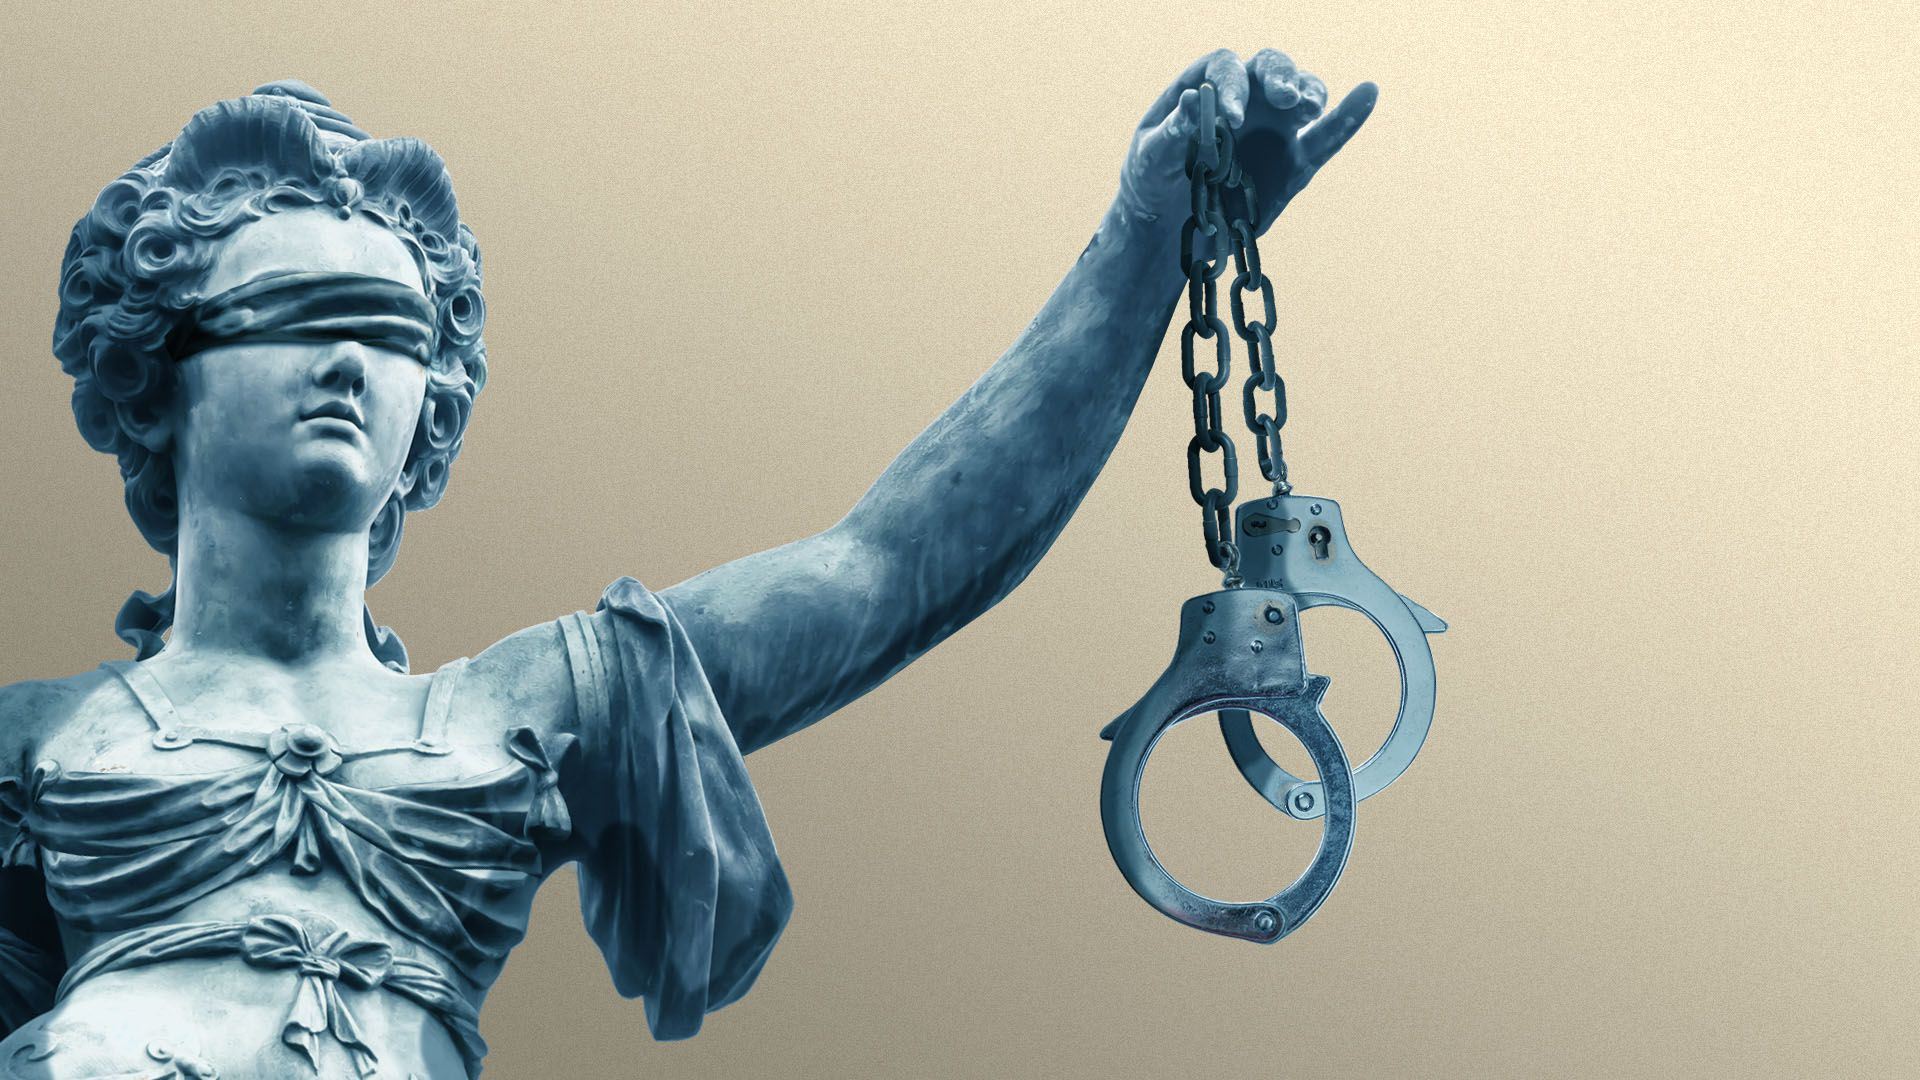 Illustration of the statue of Justice holding handcuffs in place of a scale